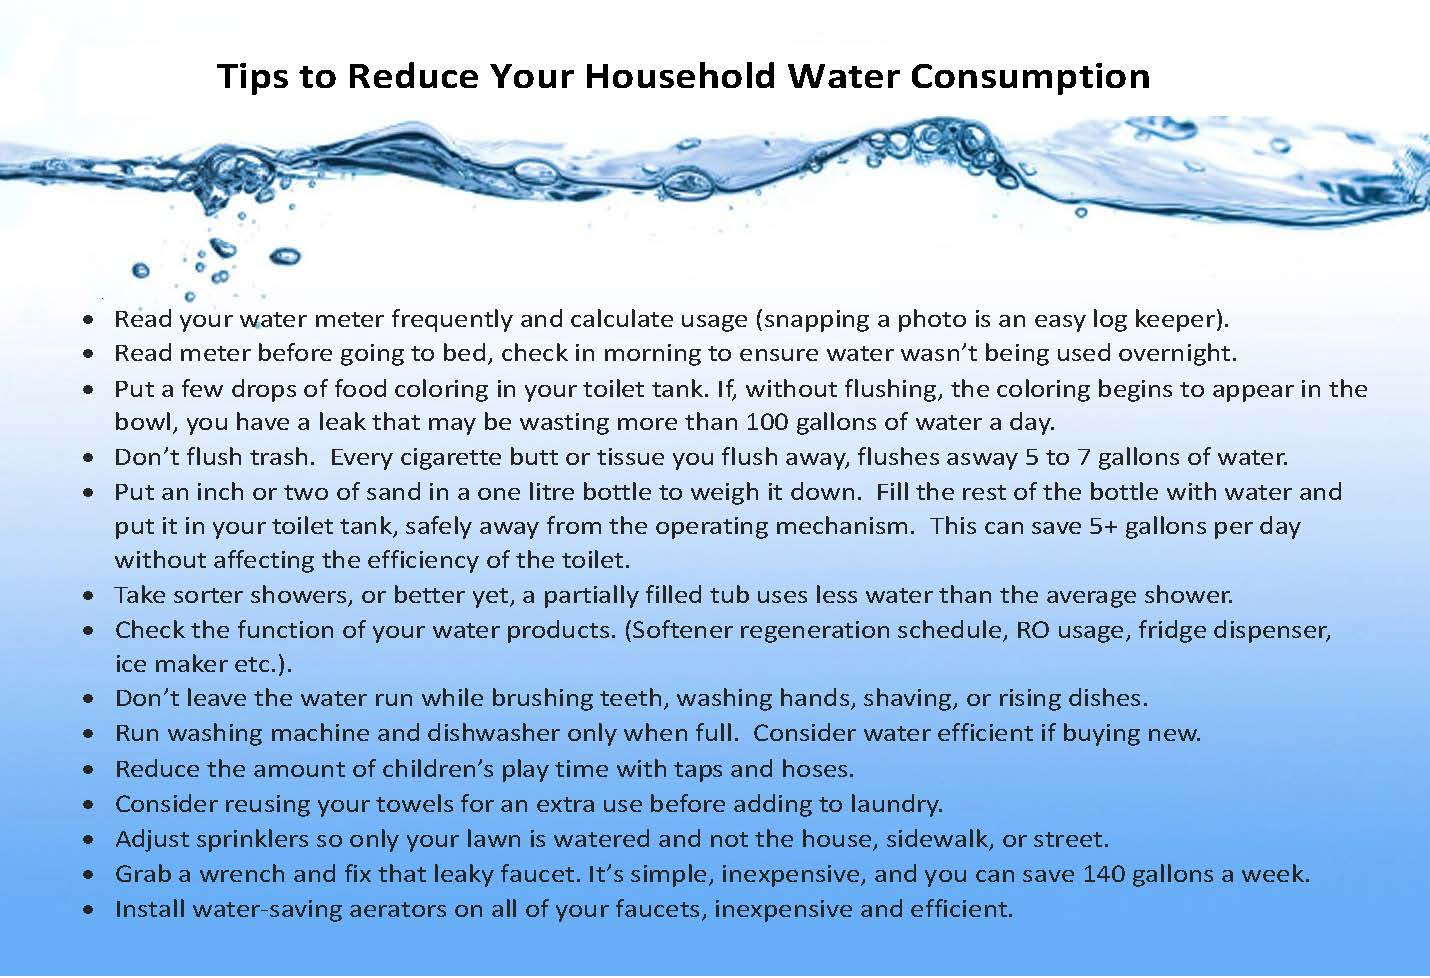 Water Conservation Tips 2021